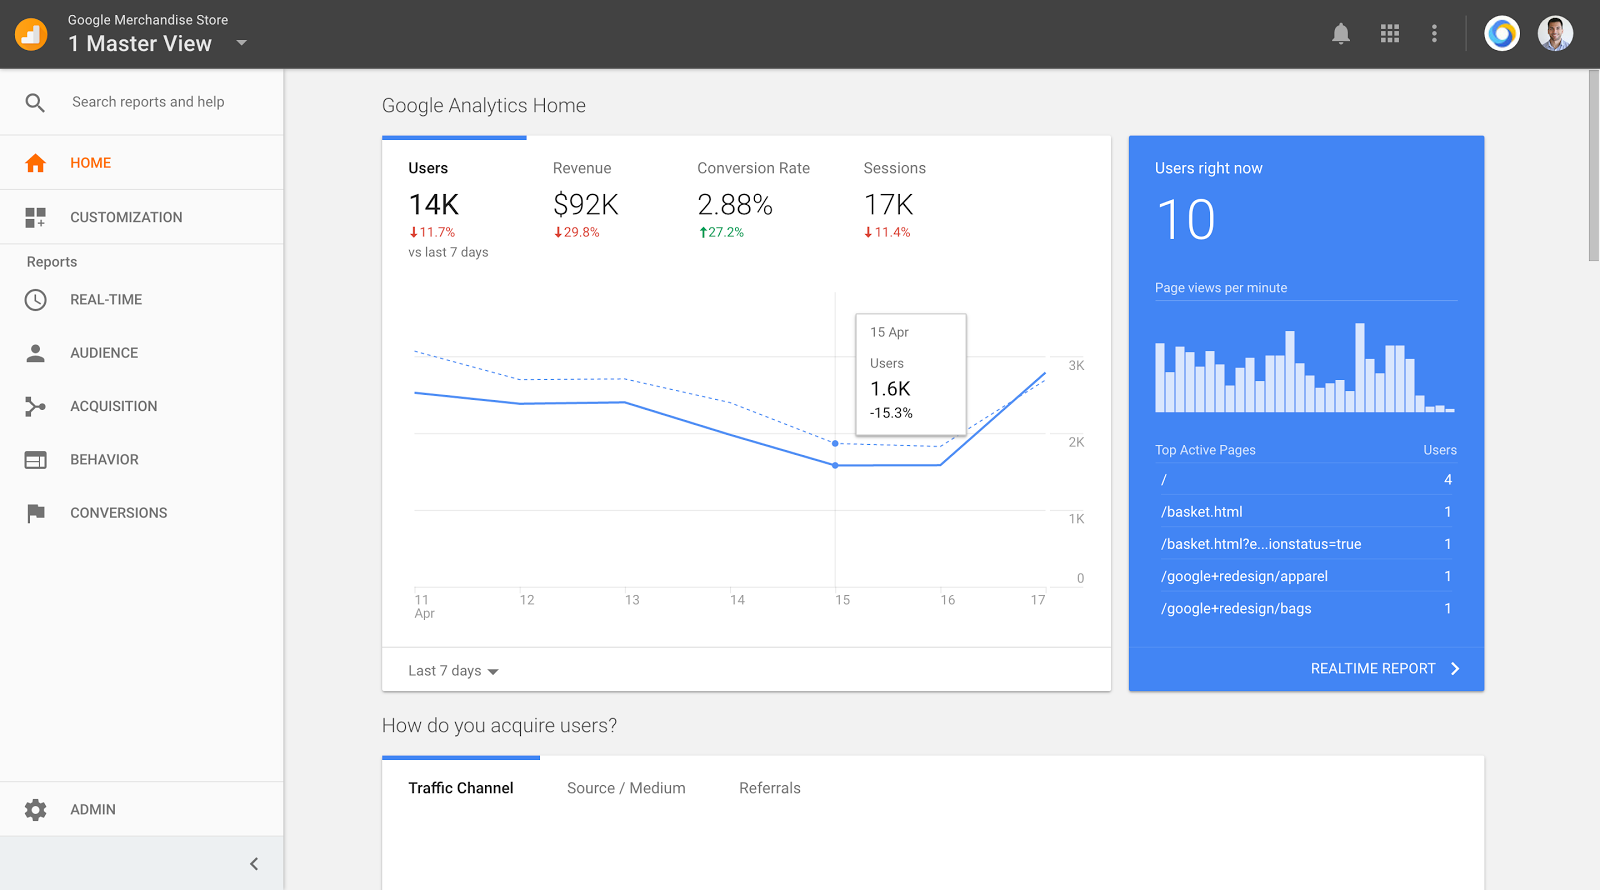 Google Adds Natural Language Queries to Google Analytics | Social Media Today